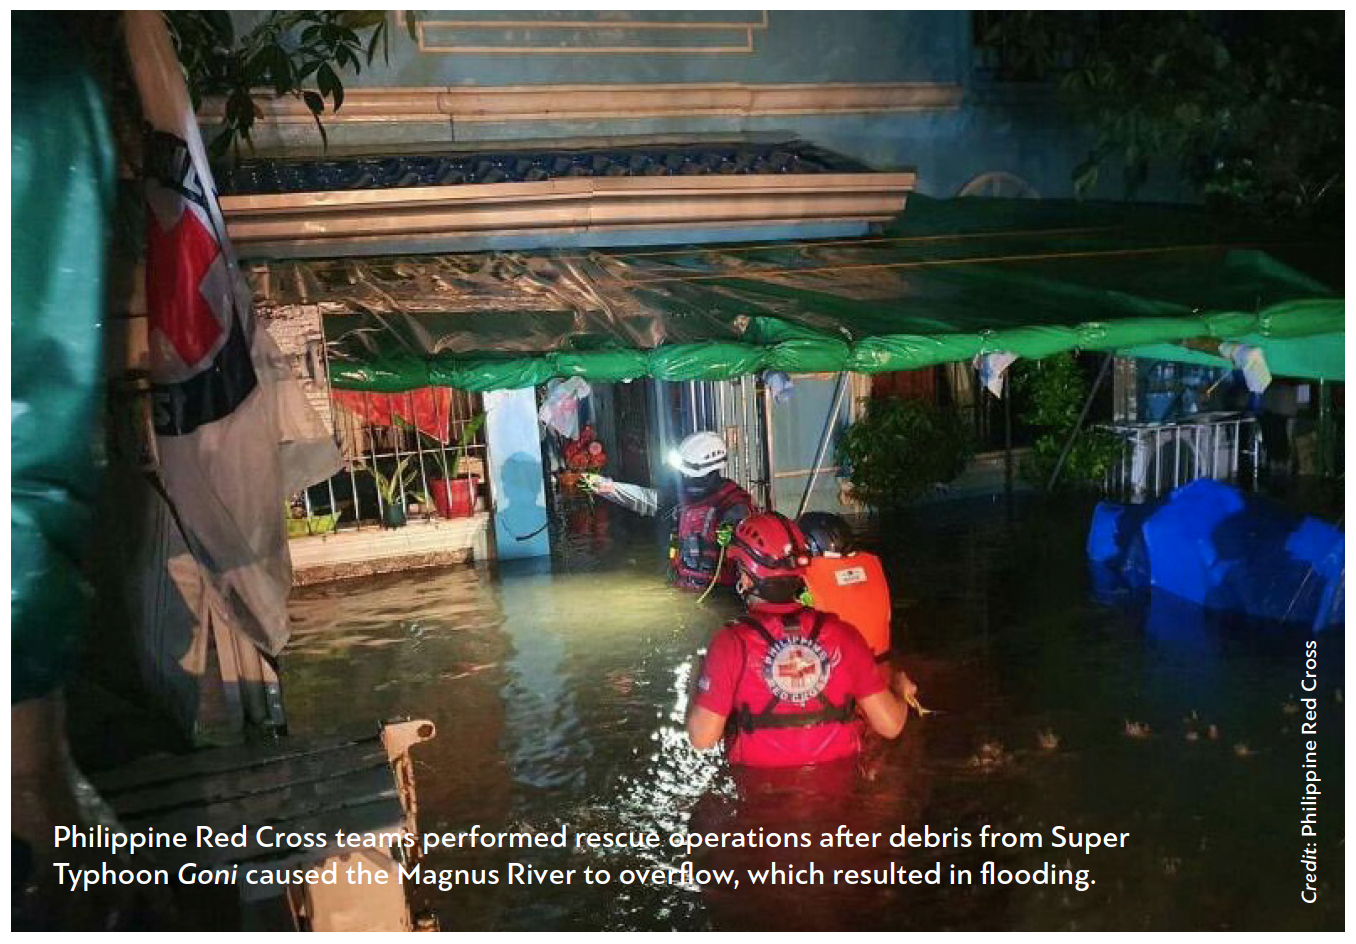 Philippine Red Cross teams performed rescue operations after debris from Super Typhoon Goni caused the Magnus River to overflow